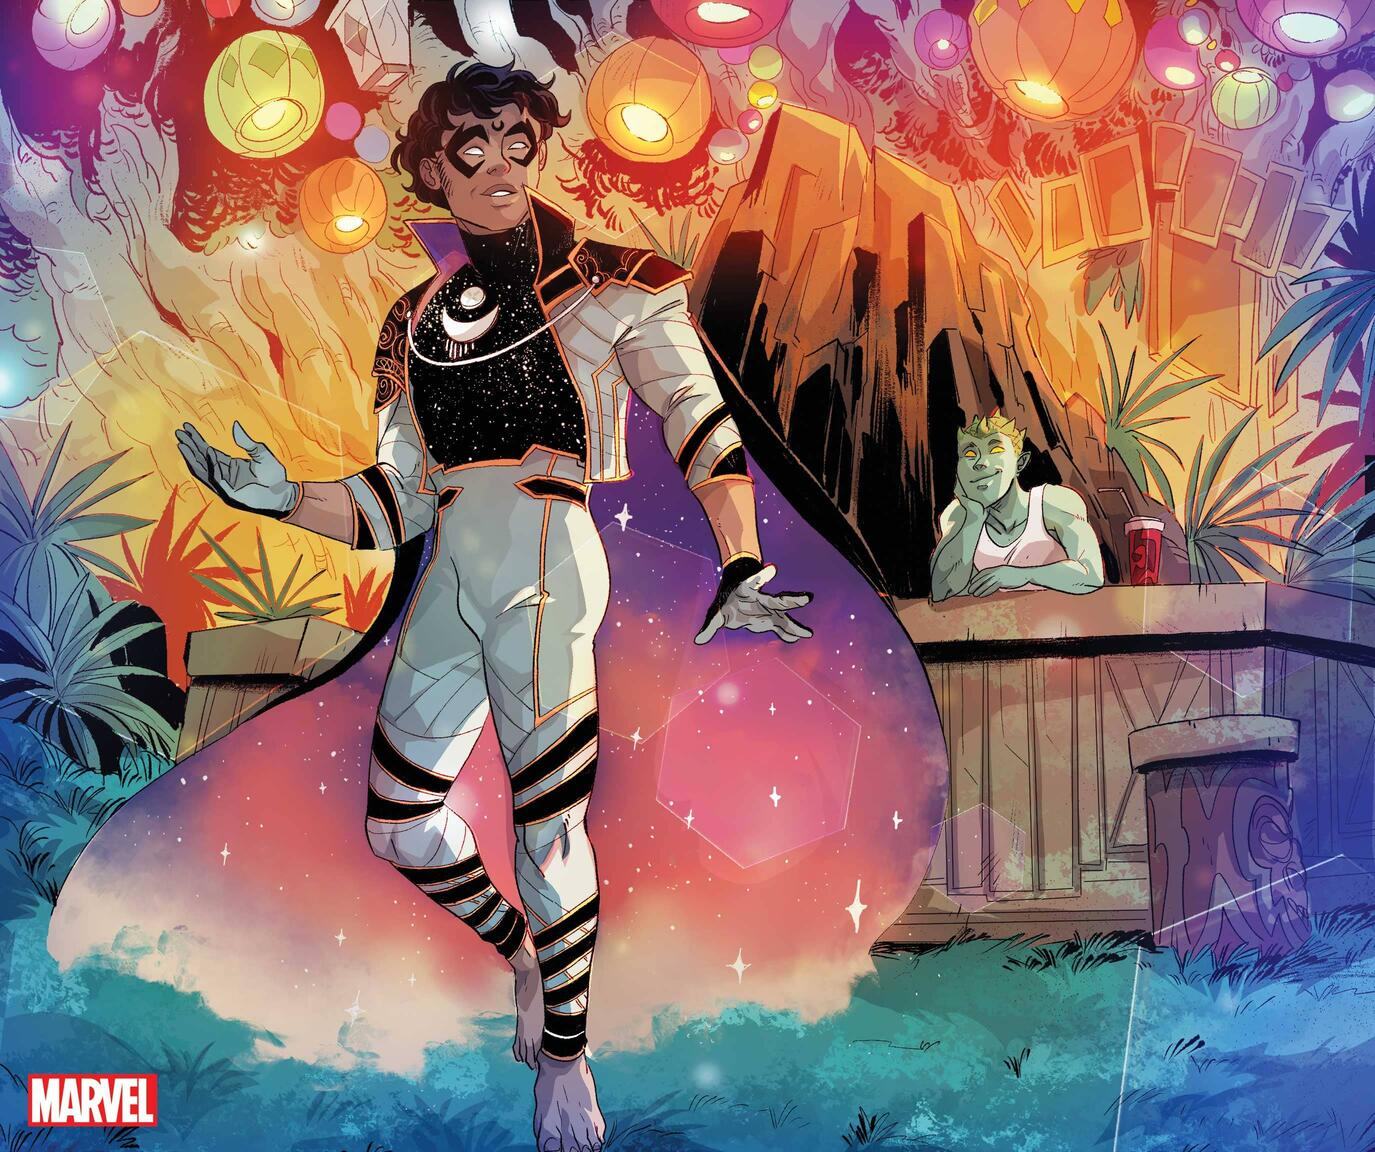 MARVEL'S VOICES: PRIDE #1 preview art by Claudia Aguirre, Somnus character design by Luciano Vecchio